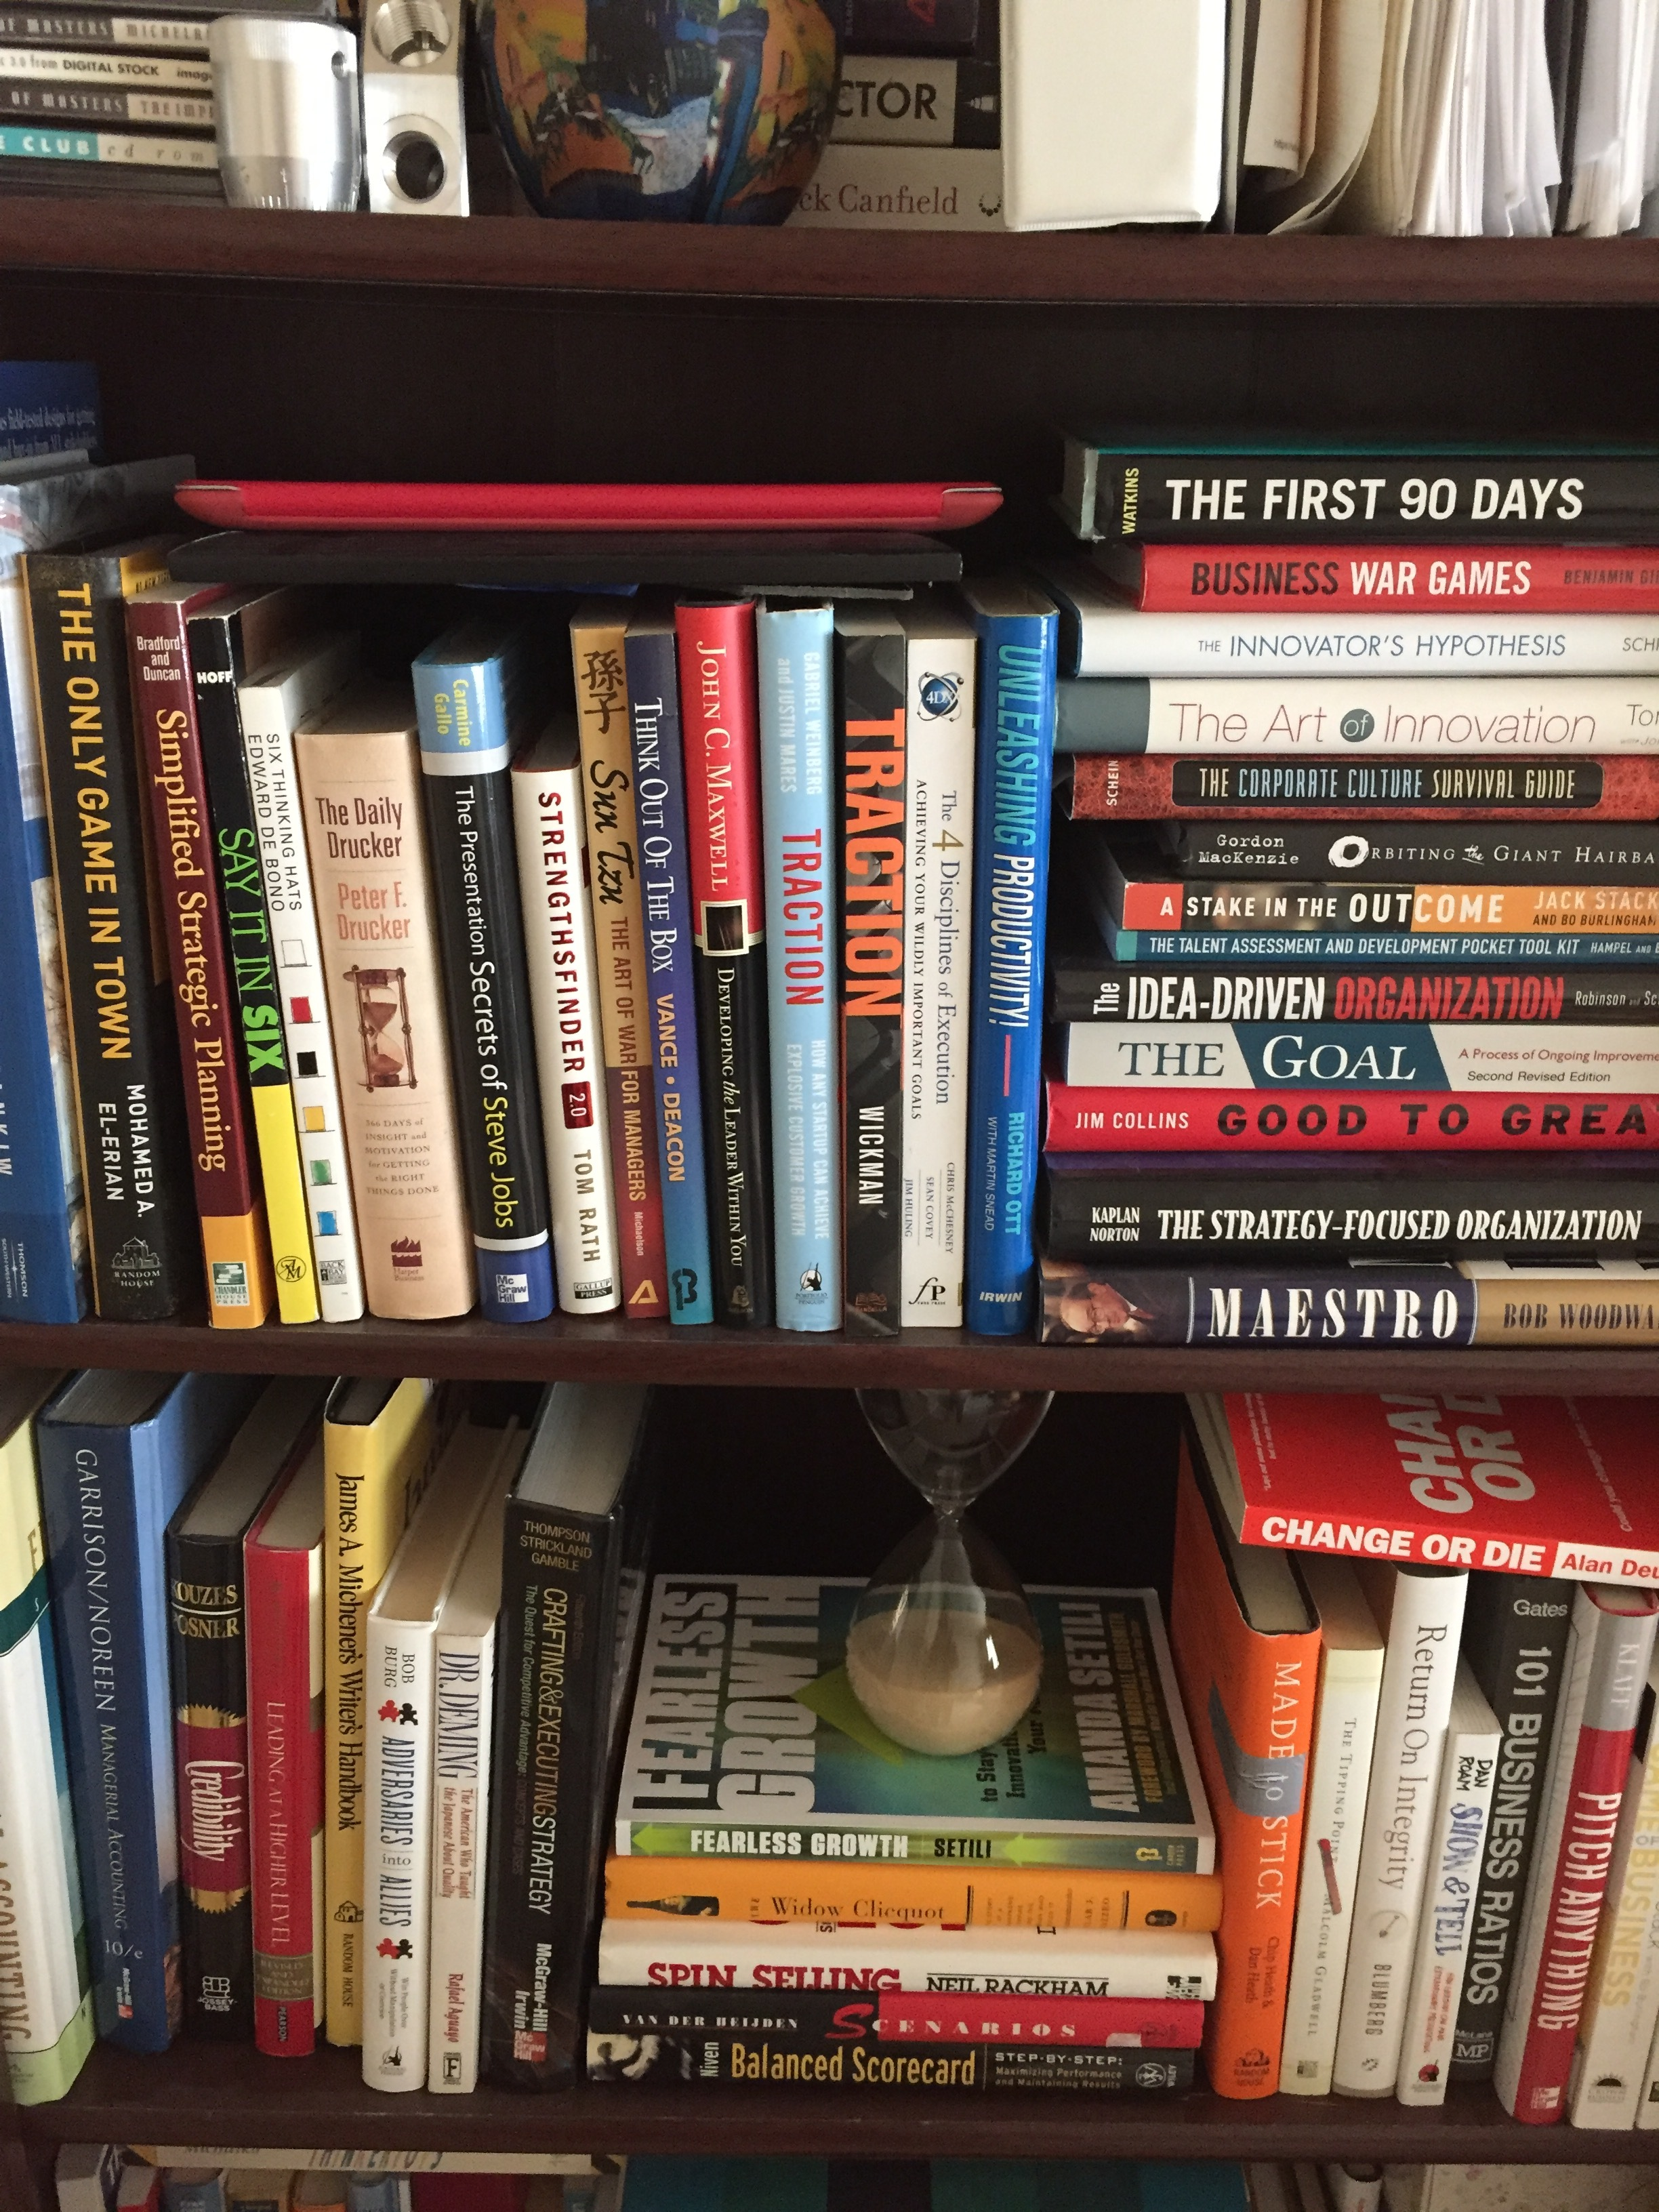 Some of my favorite books …